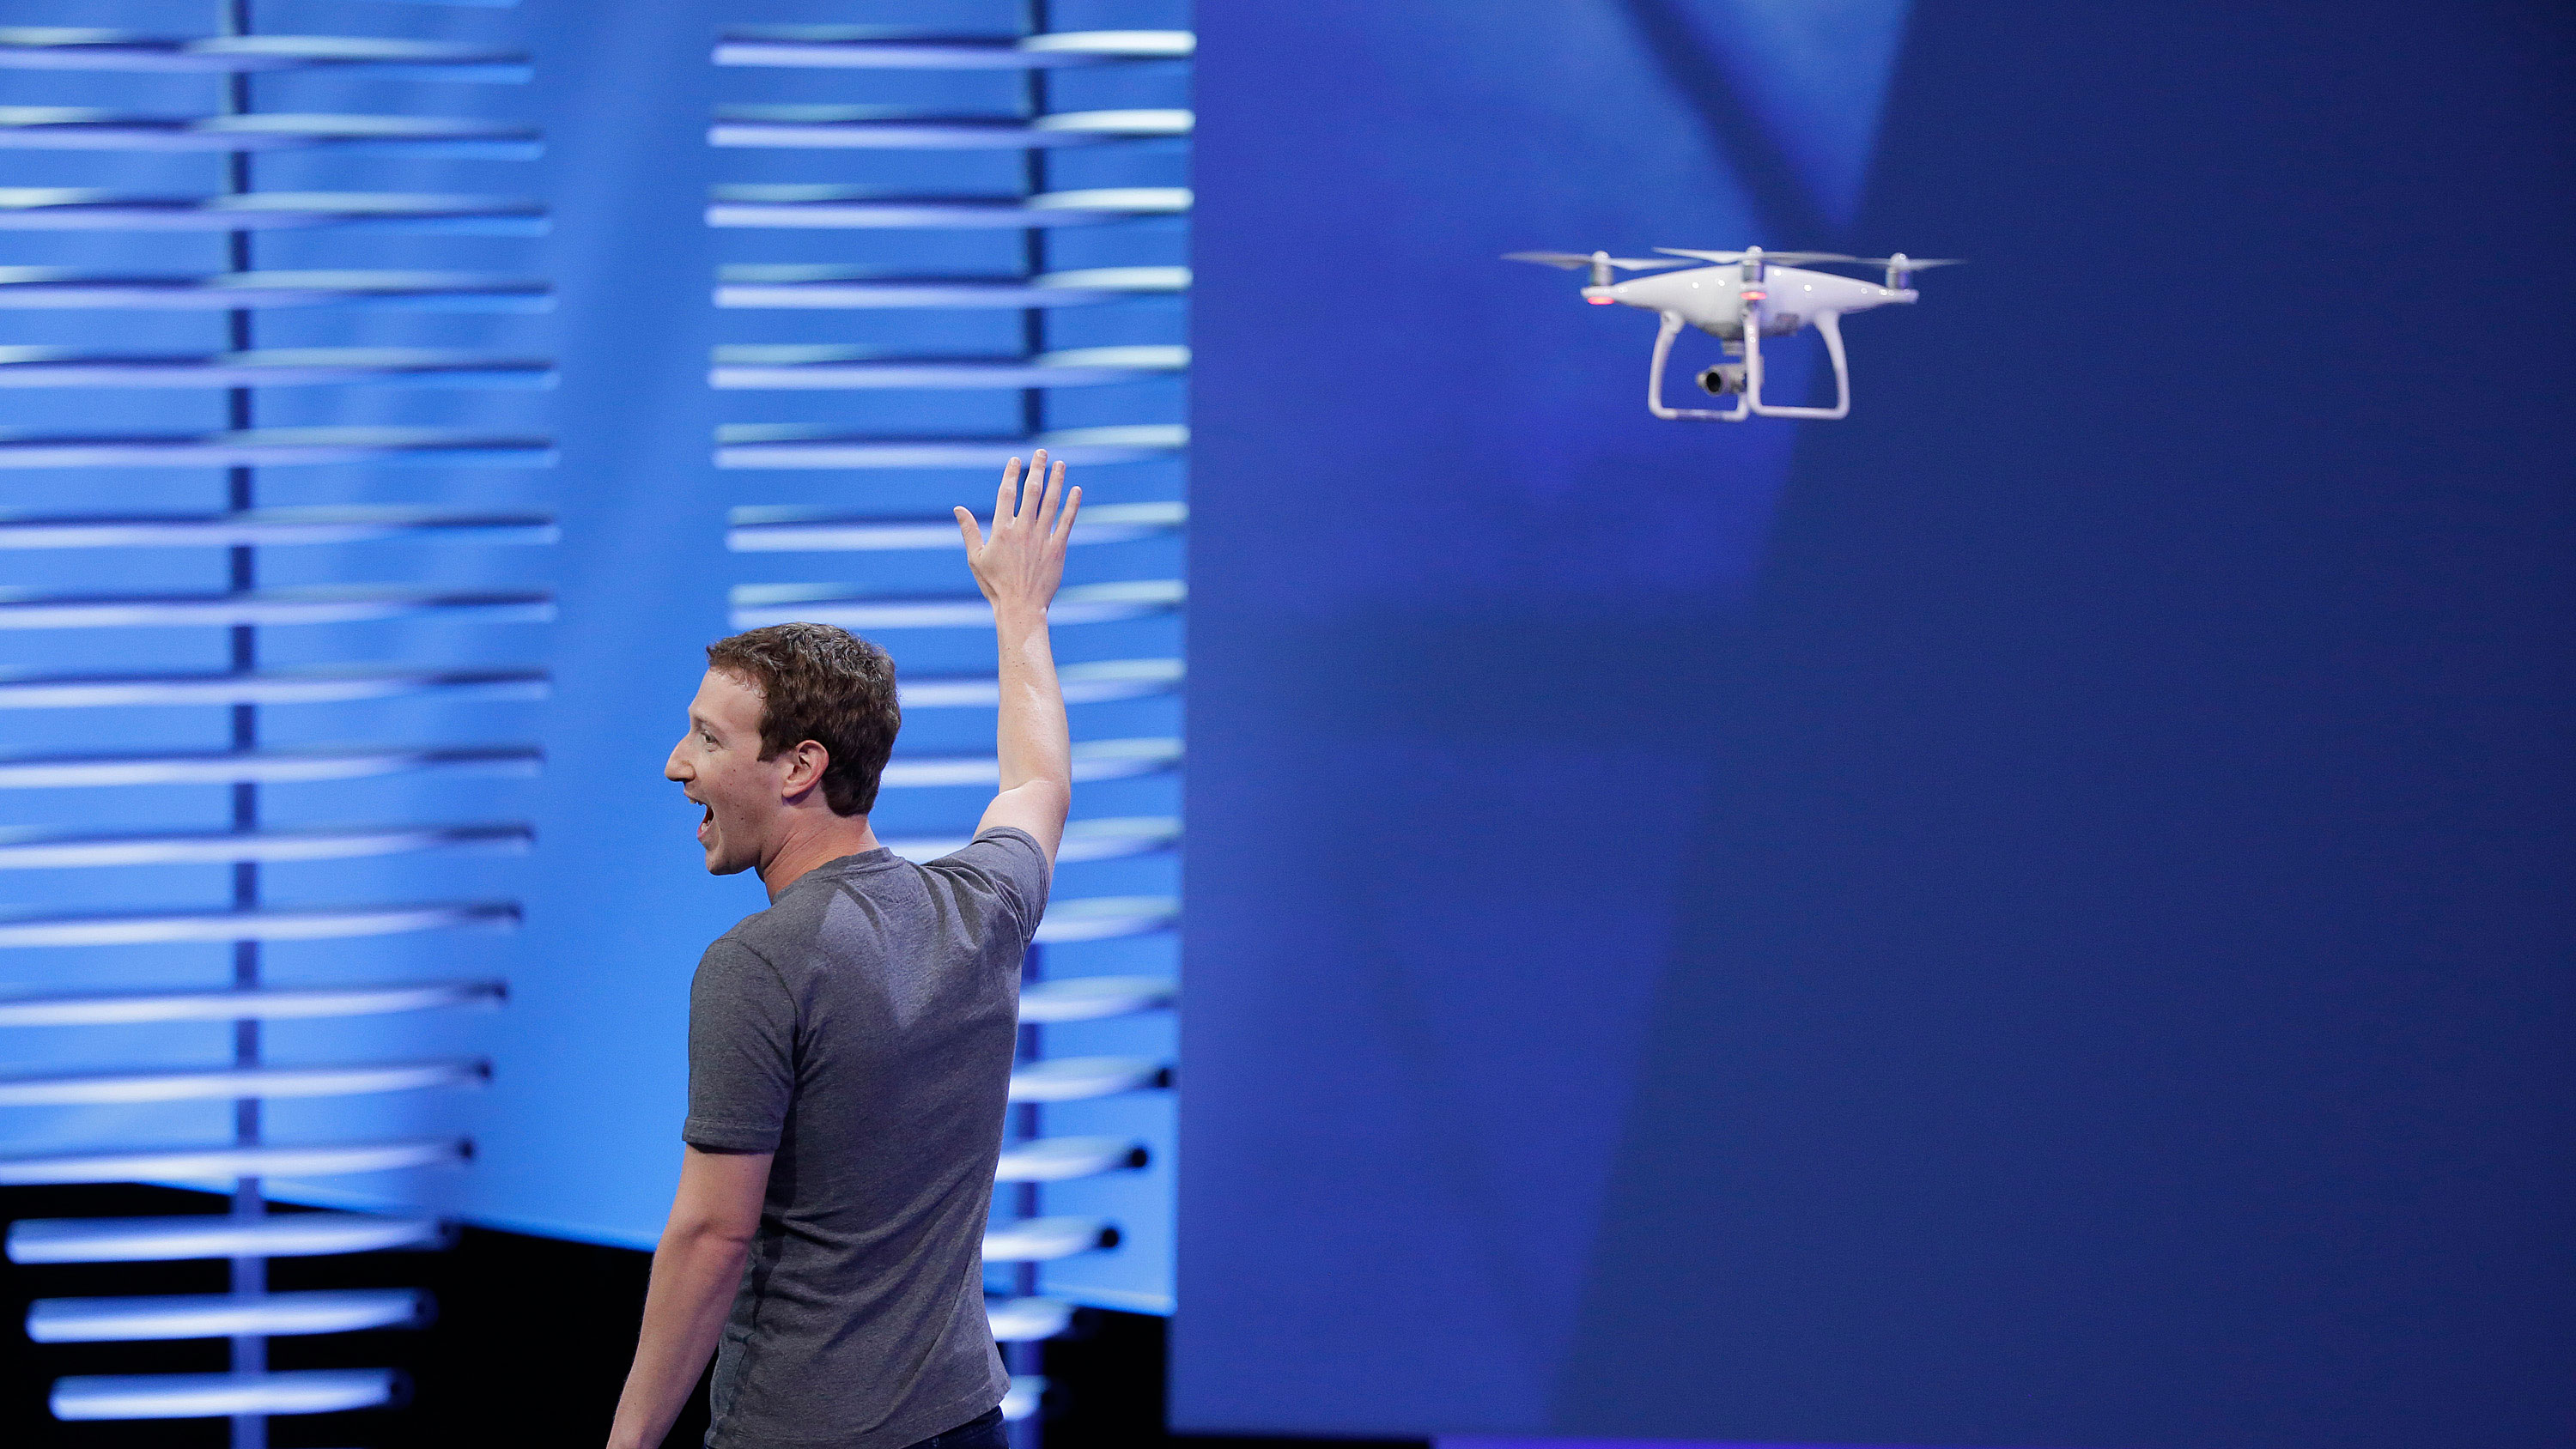 """Facebook CEO Mark Zuckerberg points to a drone flying behind him during his keynote address at the F8 Facebook Developer Conference Tuesday, April 12, 2016, in San Francisco. Facebook says people who use its Messenger chat service will soon be able to order flowers, request news articles and talk with businesses by sending them direct text messages. At its annual conference for software developers, Zuckerberg said the company is releasing new tools that businesses can use to build """"chat bots,"""" or programs that talk to customers in conversational language. (AP Photo/Eric Risberg)"""